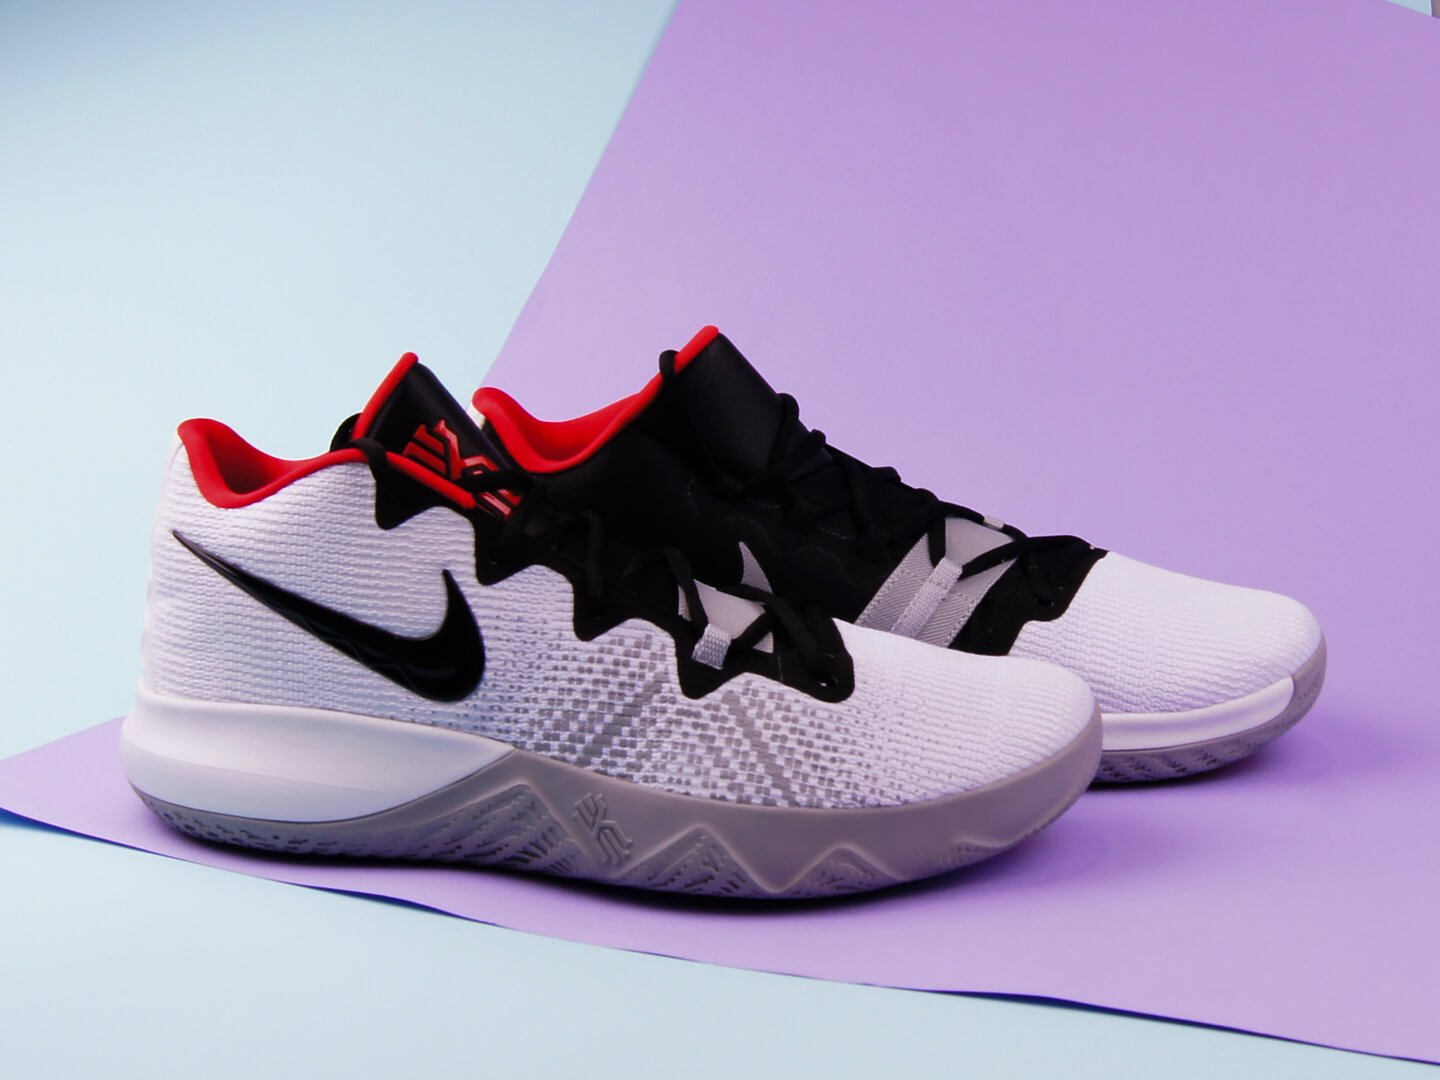 Мужские кроссовки Nike Kyrie Flytrap / white, black, red